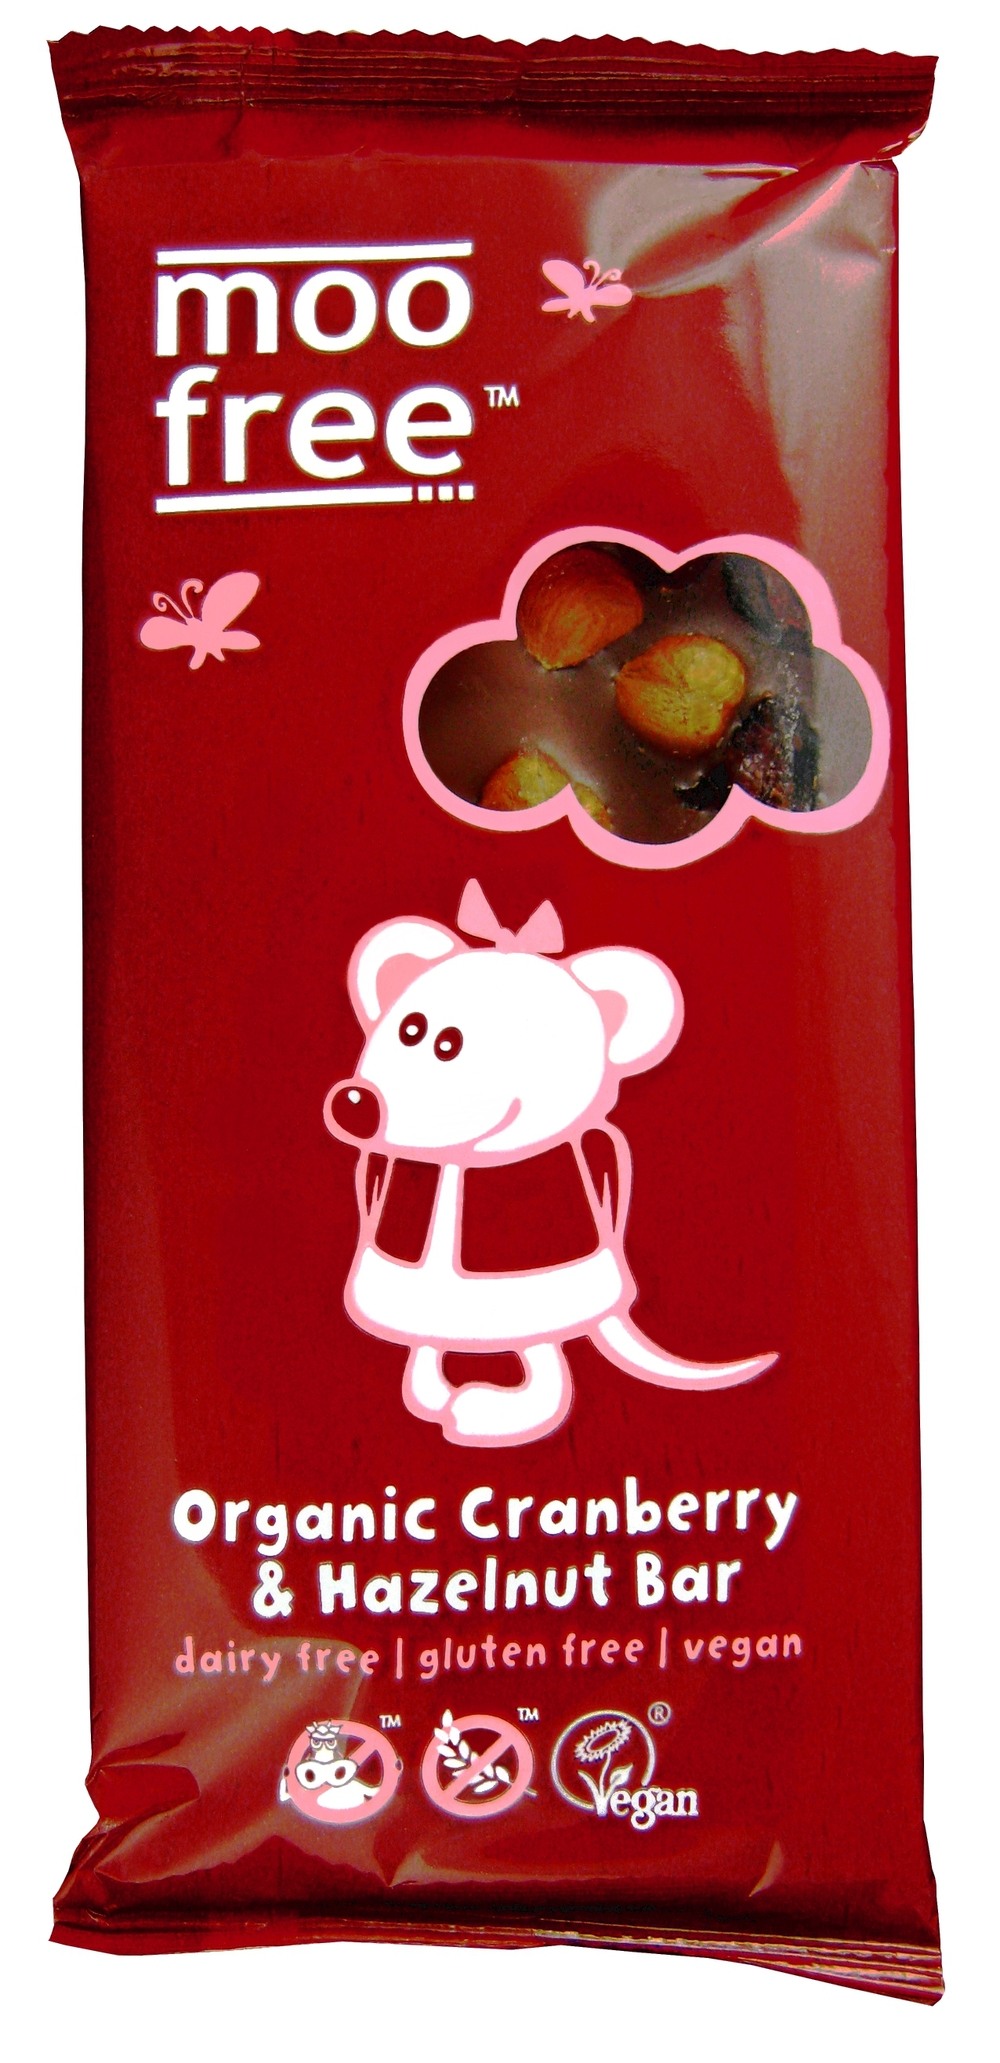 moo-free-cranberry-100g-bar-hi-res.jpg